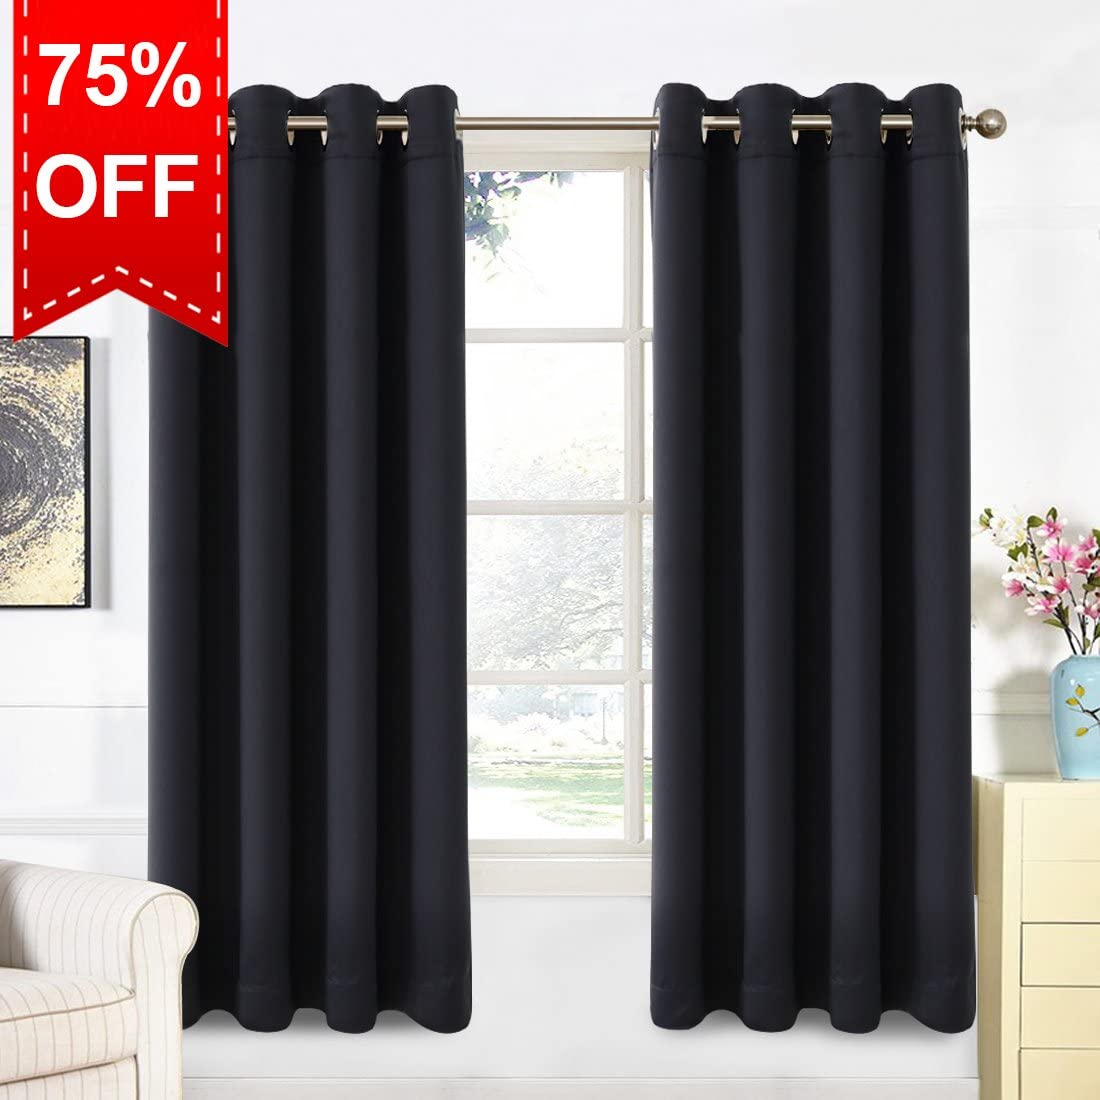 Dark Grey, W46 x L54 Warm Harbor 2 Panels Blackout Curtains Soft Thermal Insulated Window Treatment for Bedroom Livingroom Eyelet Blackout Curtains